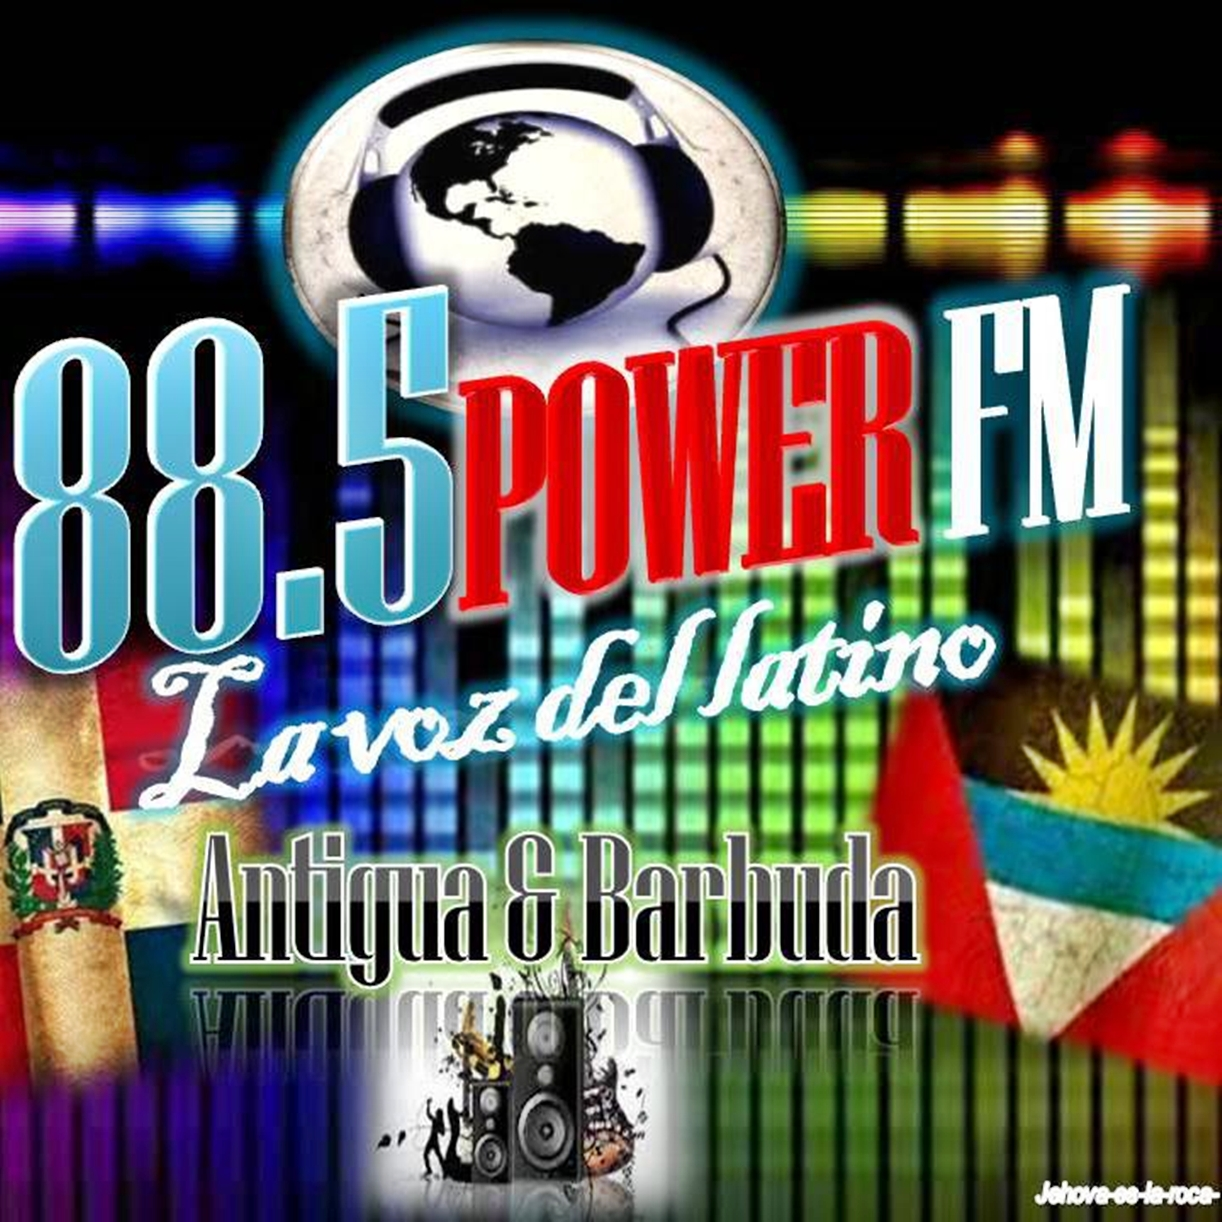 Power 88.5 FM, St. John´s, Antigua & Barbuda